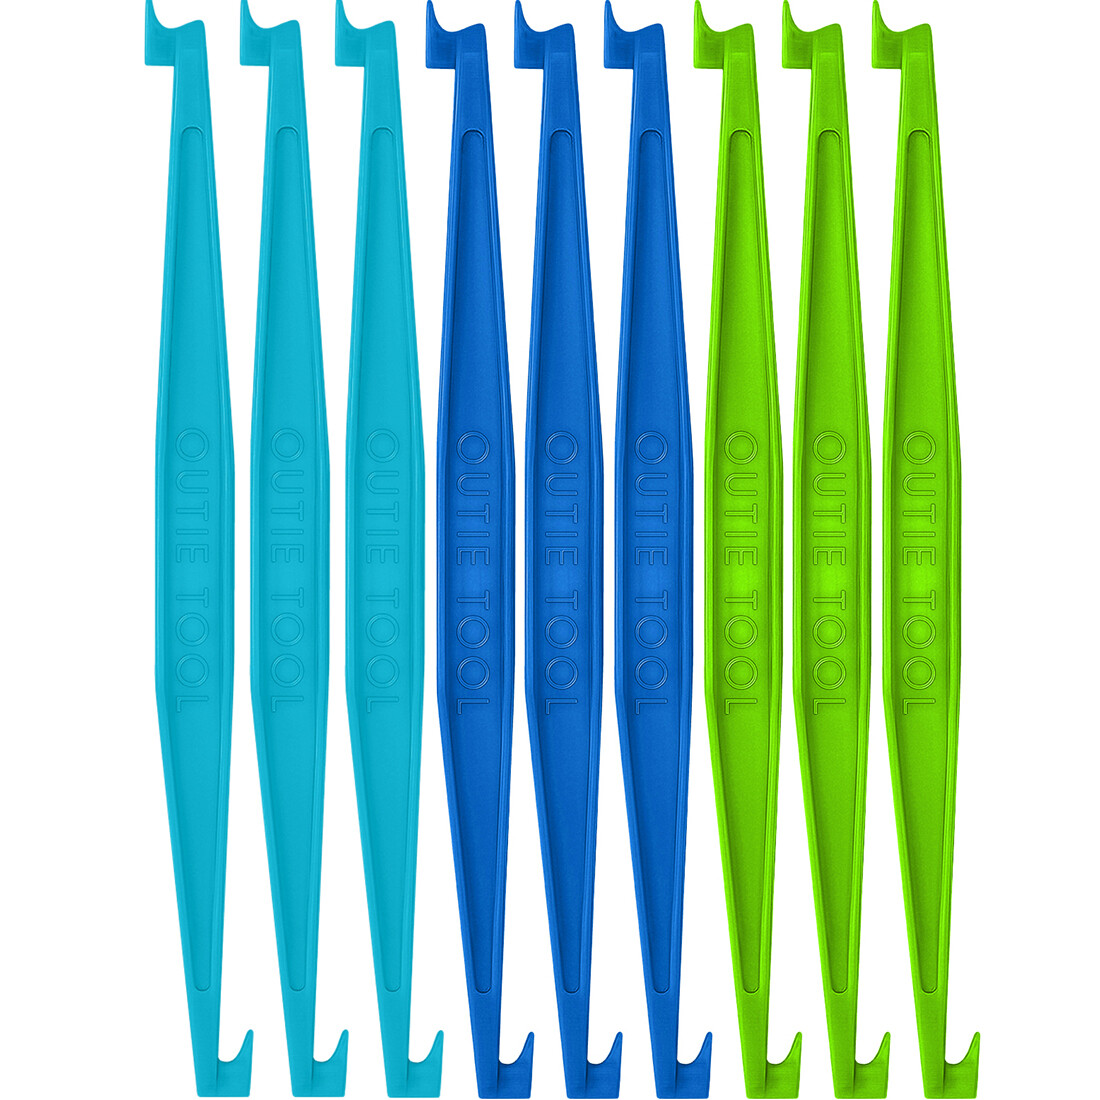 60 OUTIE TOOLS - 20 SKY BLUE, 20 PACIFIC, 20 NEON GREEN Individually Packaged Singles